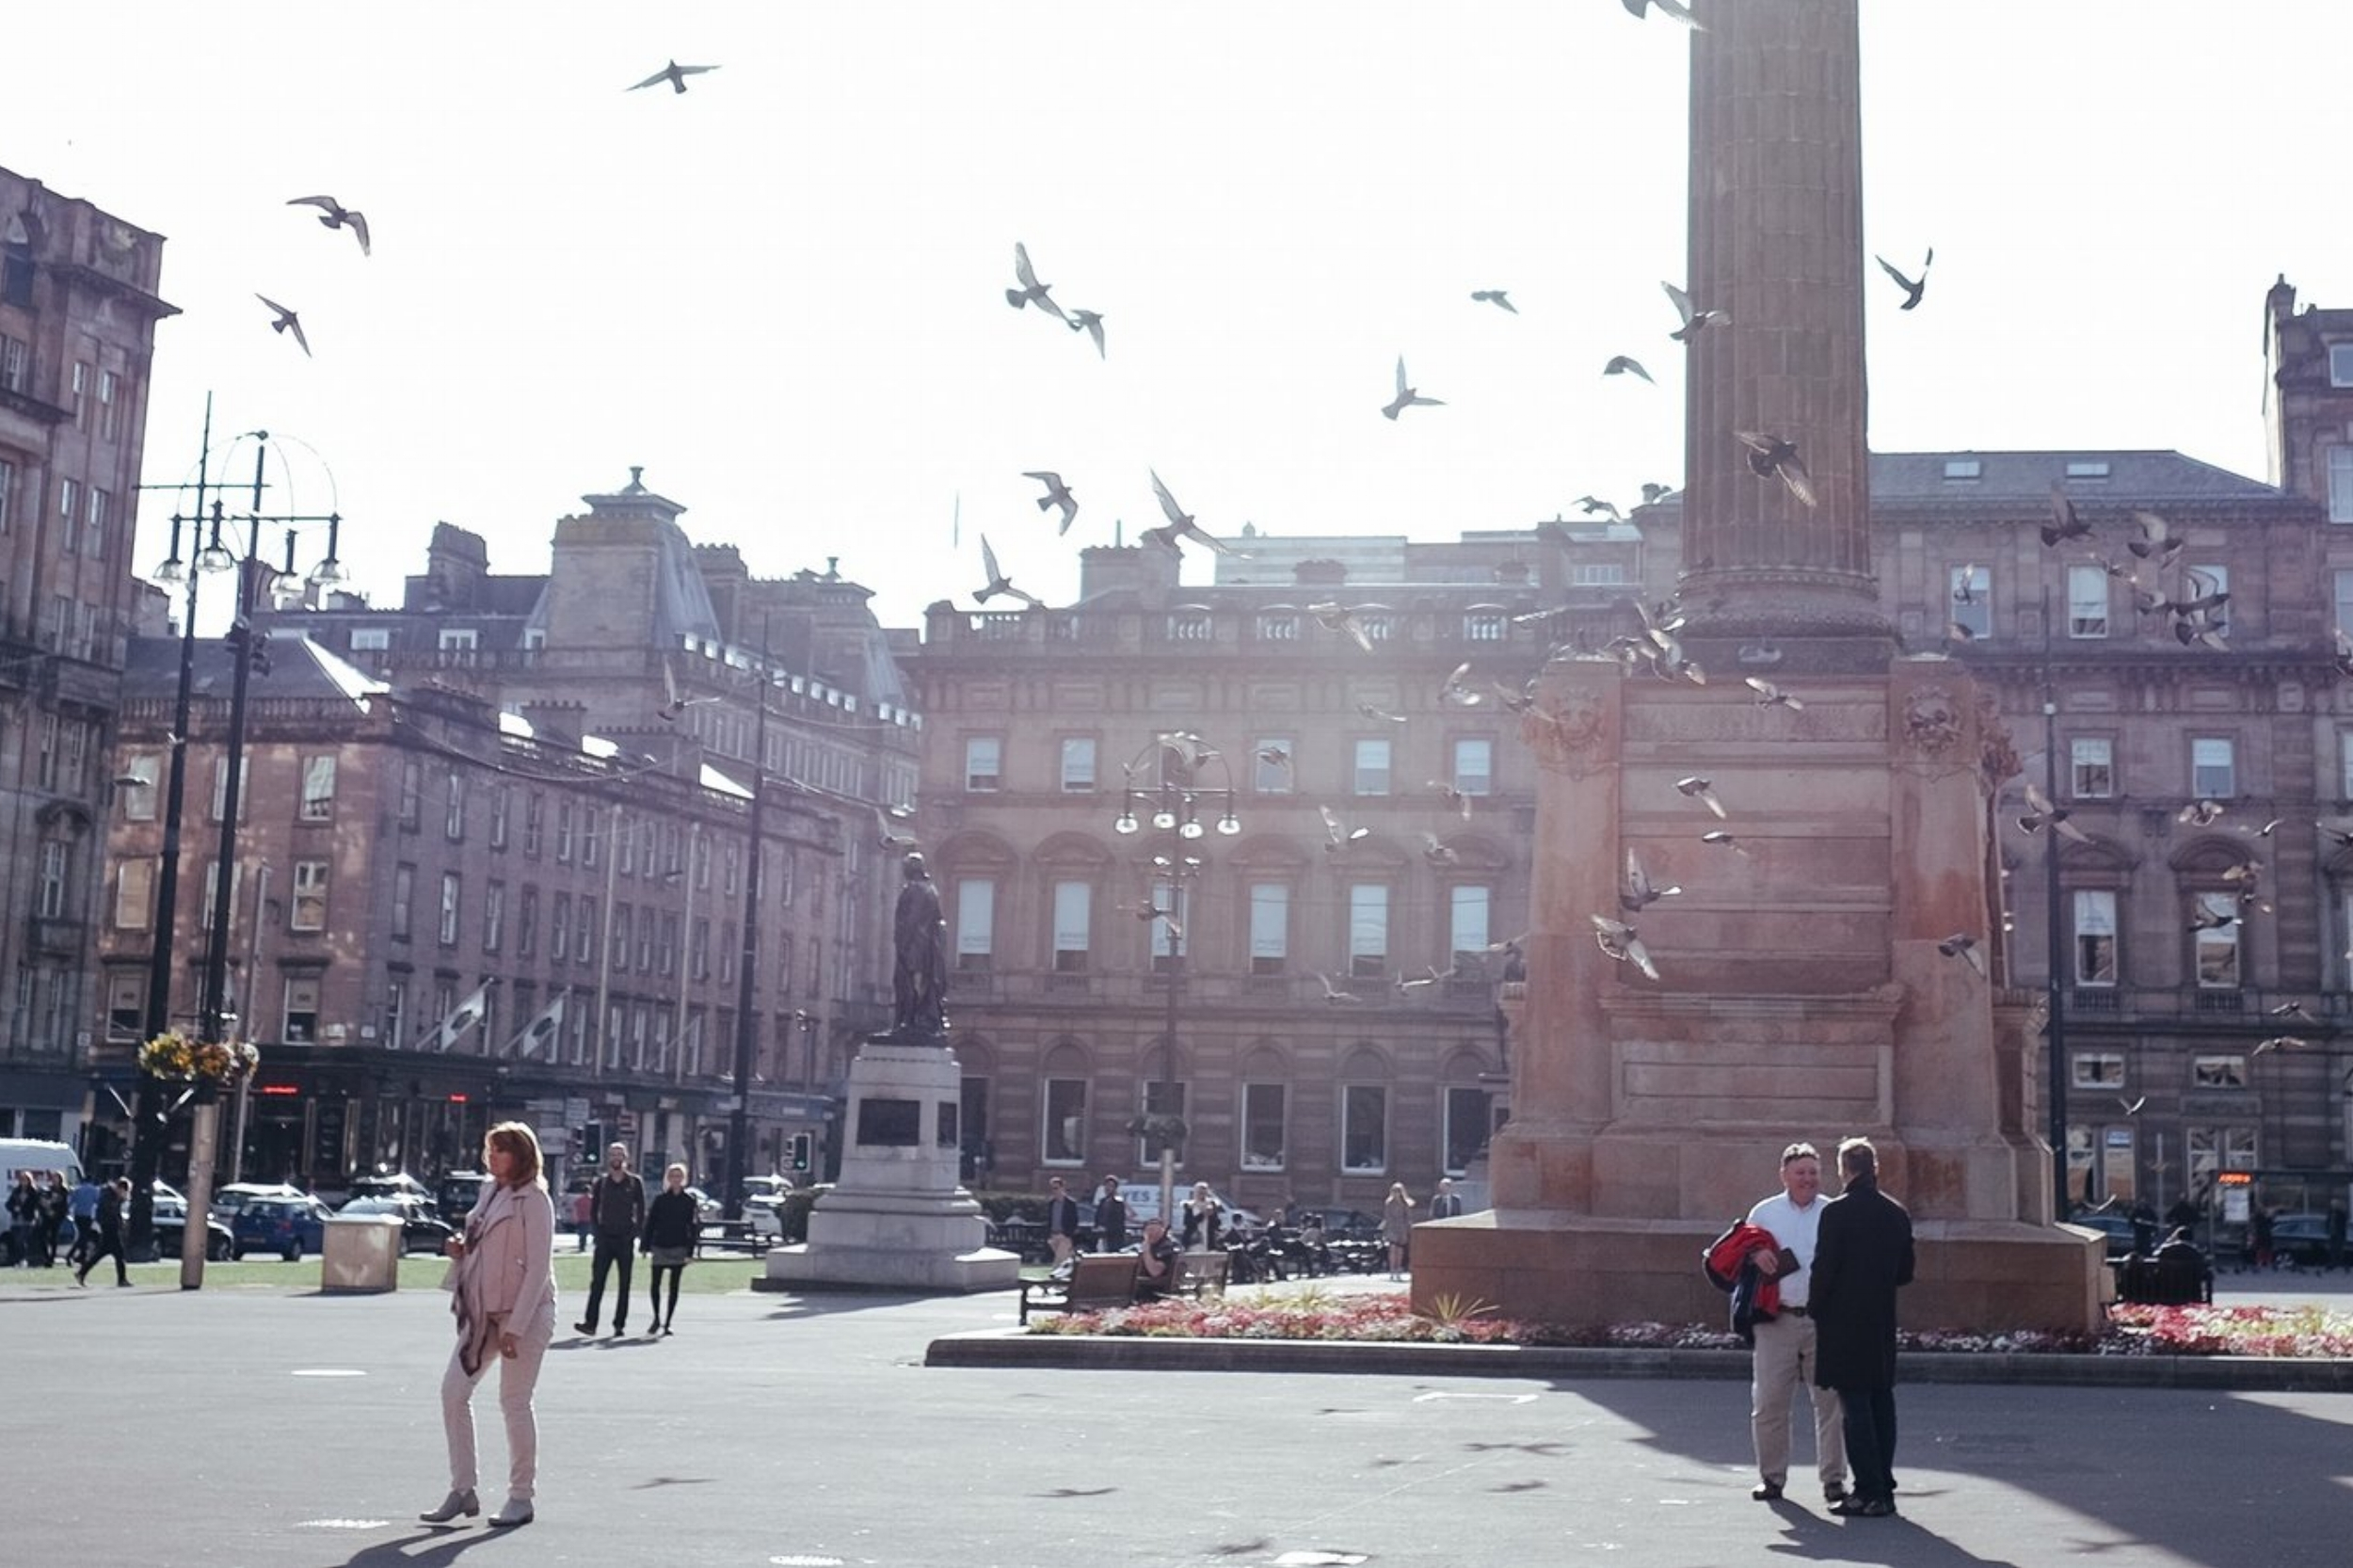 Day 1 Glasgow - The Lighthouse > Buchanan St, Argyle St, Merchant City> George Square > City Chamber